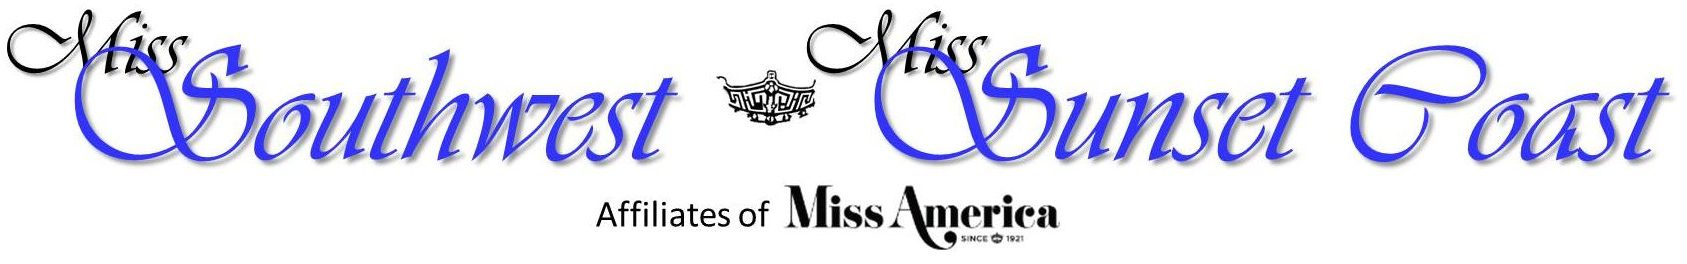 Miss Southwest & Miss Sunset Coast